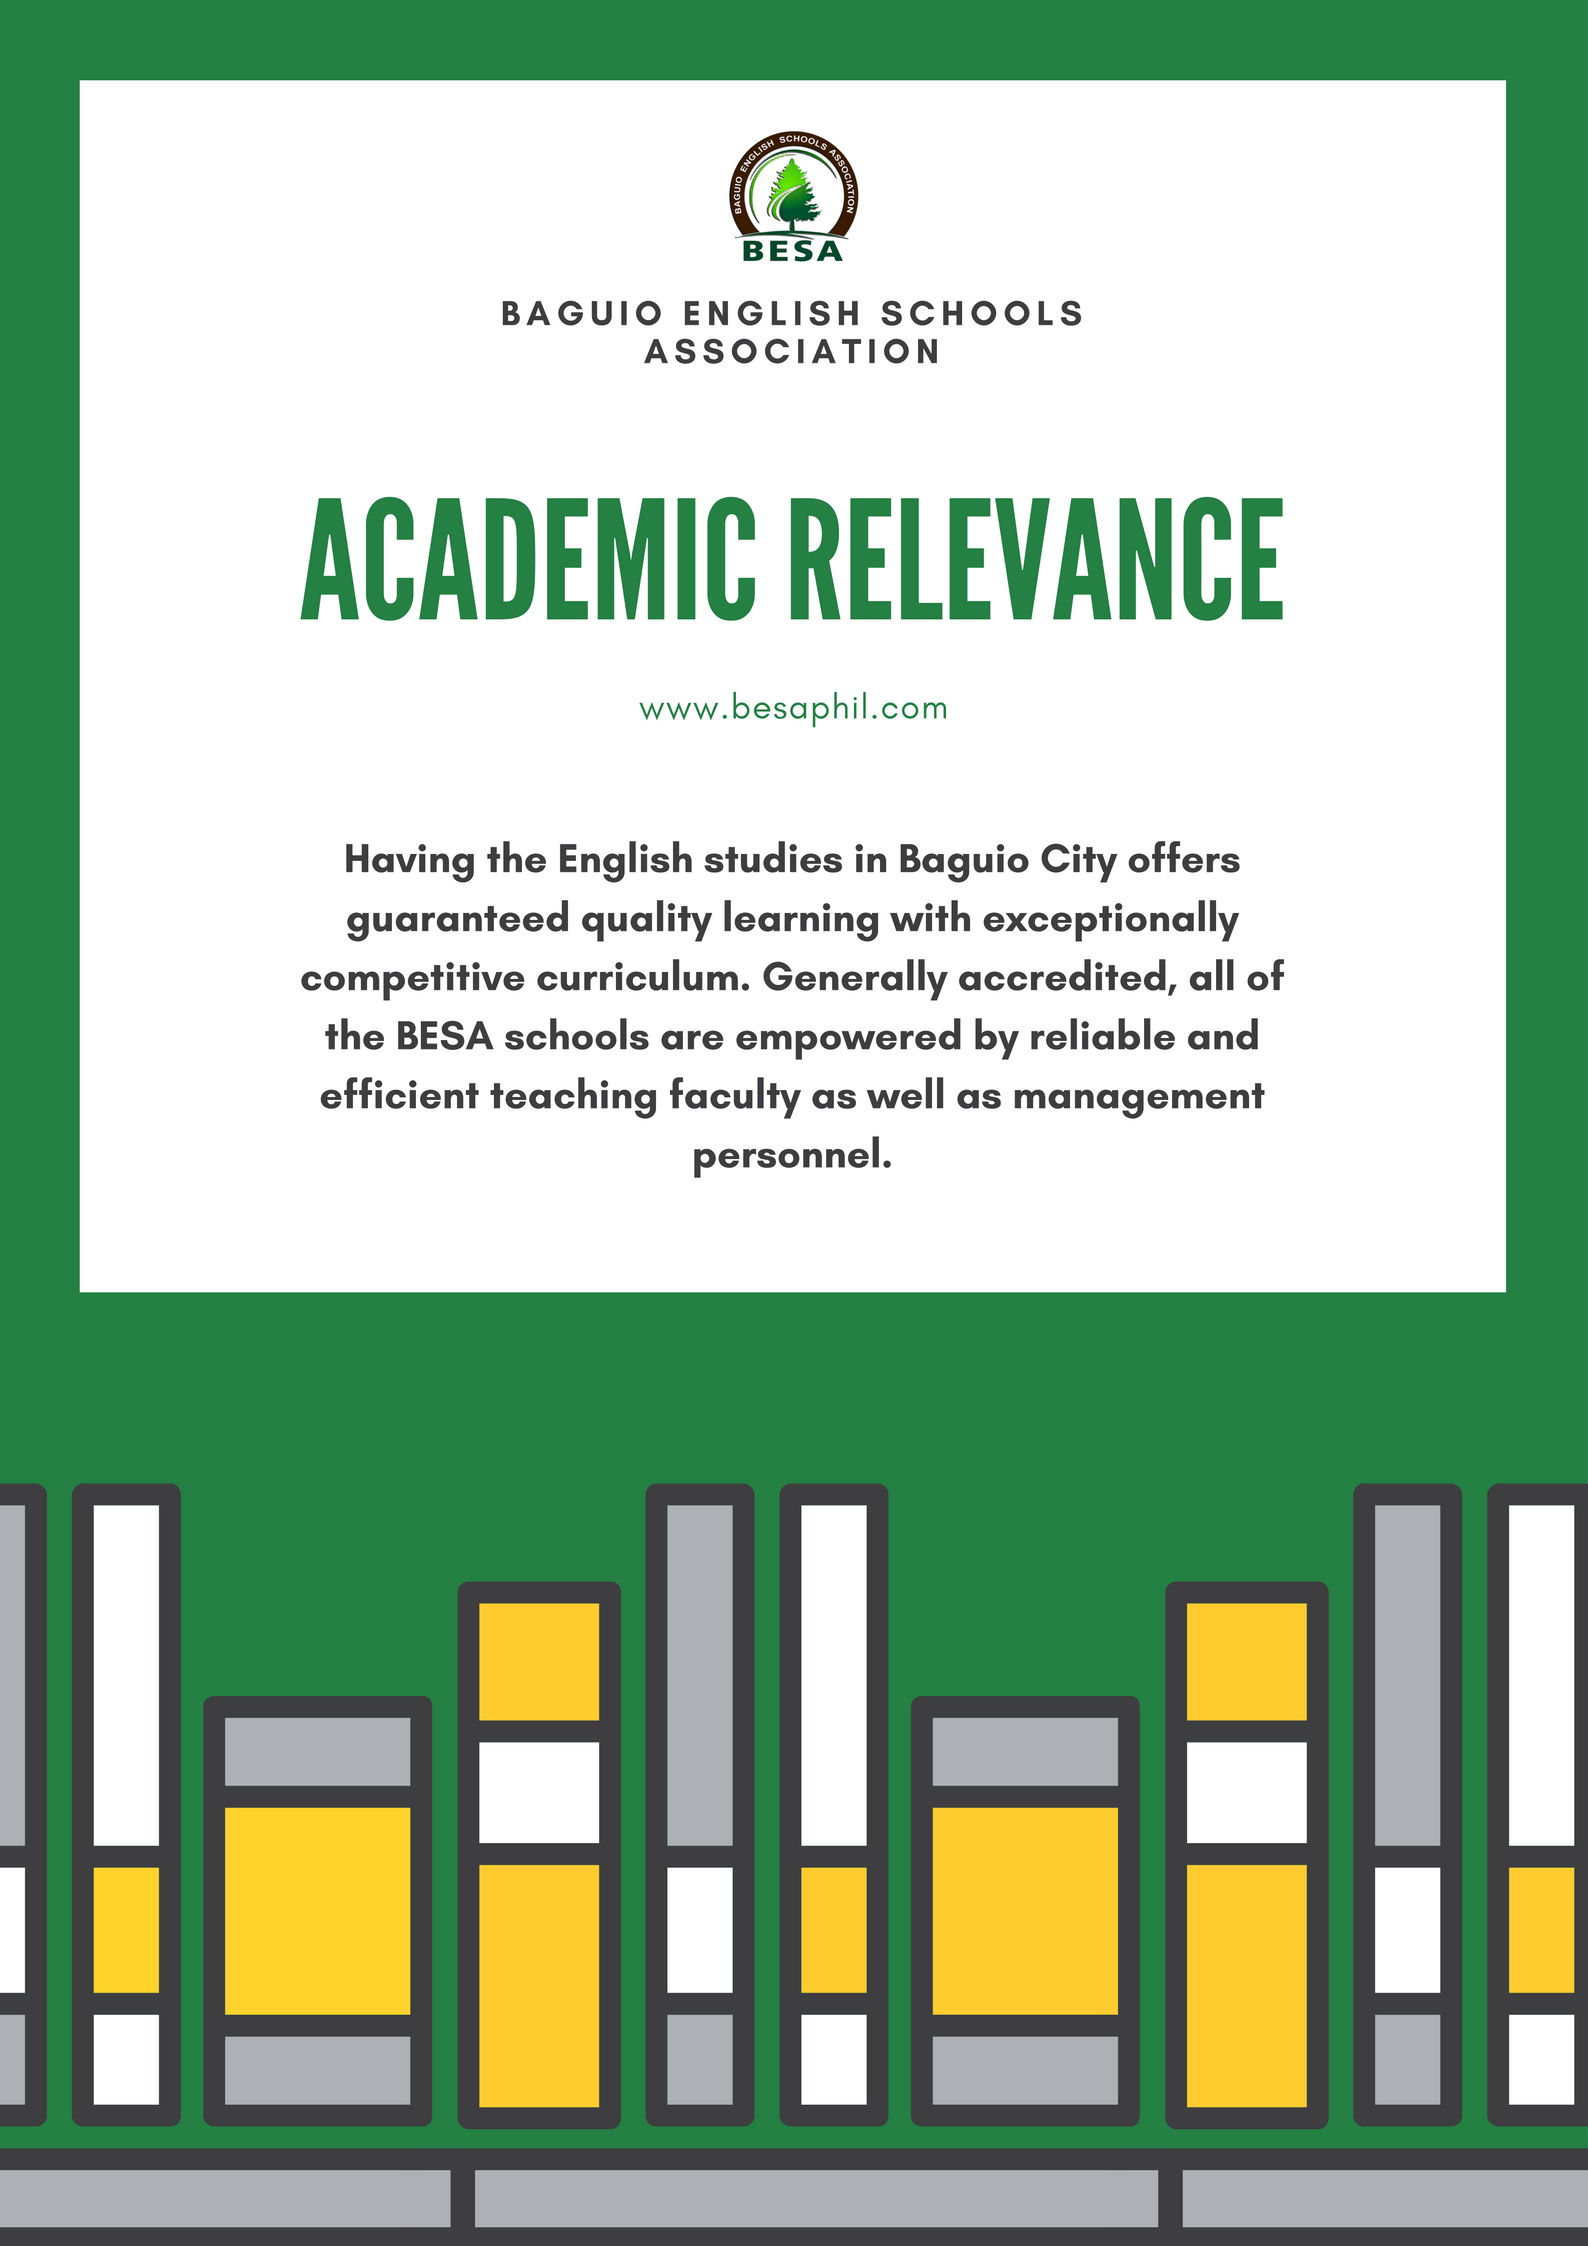 The Baguio English Schools Association is here to help you on appropriation and satisfaction for your English language learning needs. Together with our schools vision-mission and goals, and ours, we assure you of a successful and applicable learning.  For more information:  https://besaphil.com/  Follow us in our official social media accounts:  Facebook: https://www.facebook.com/besaphil  Twitter : https://twitter.com/besa_phil?lang=en  Pinterest : https://www.pinterest.com/besainfo/pins/